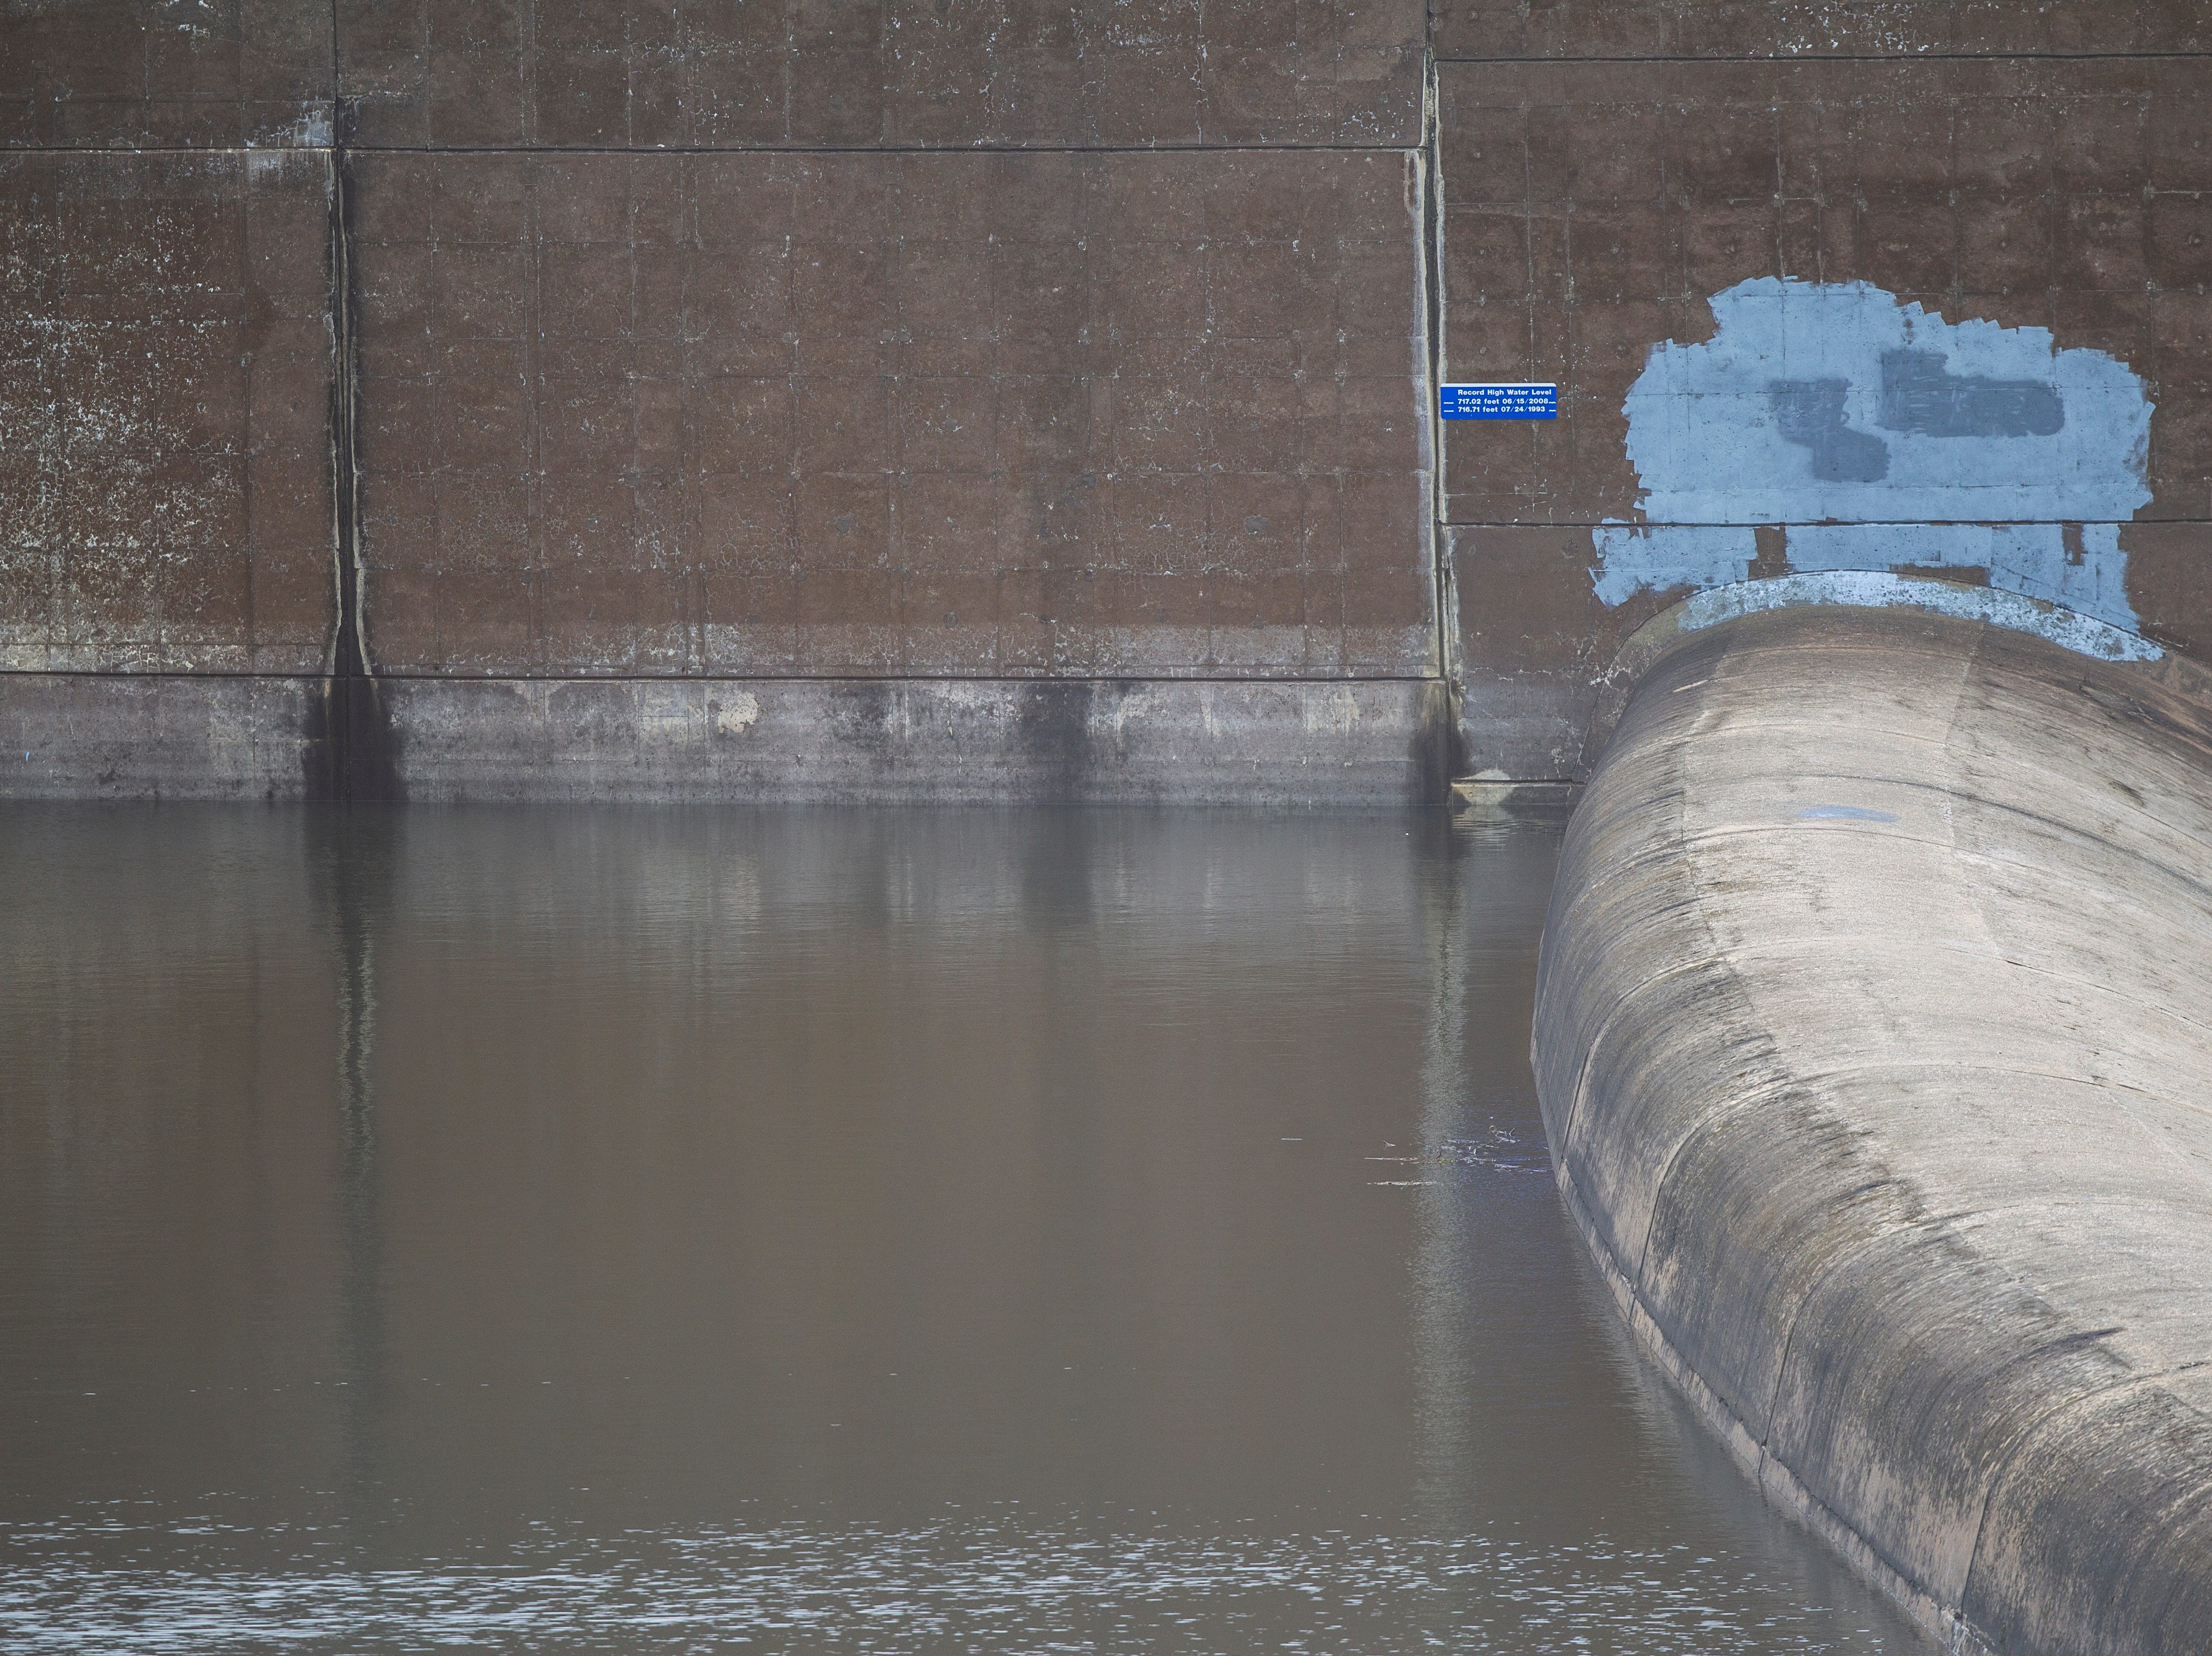 Water nears the emergency spillway on Monday, Oct. 8, 2018, at the Coralville Dam.